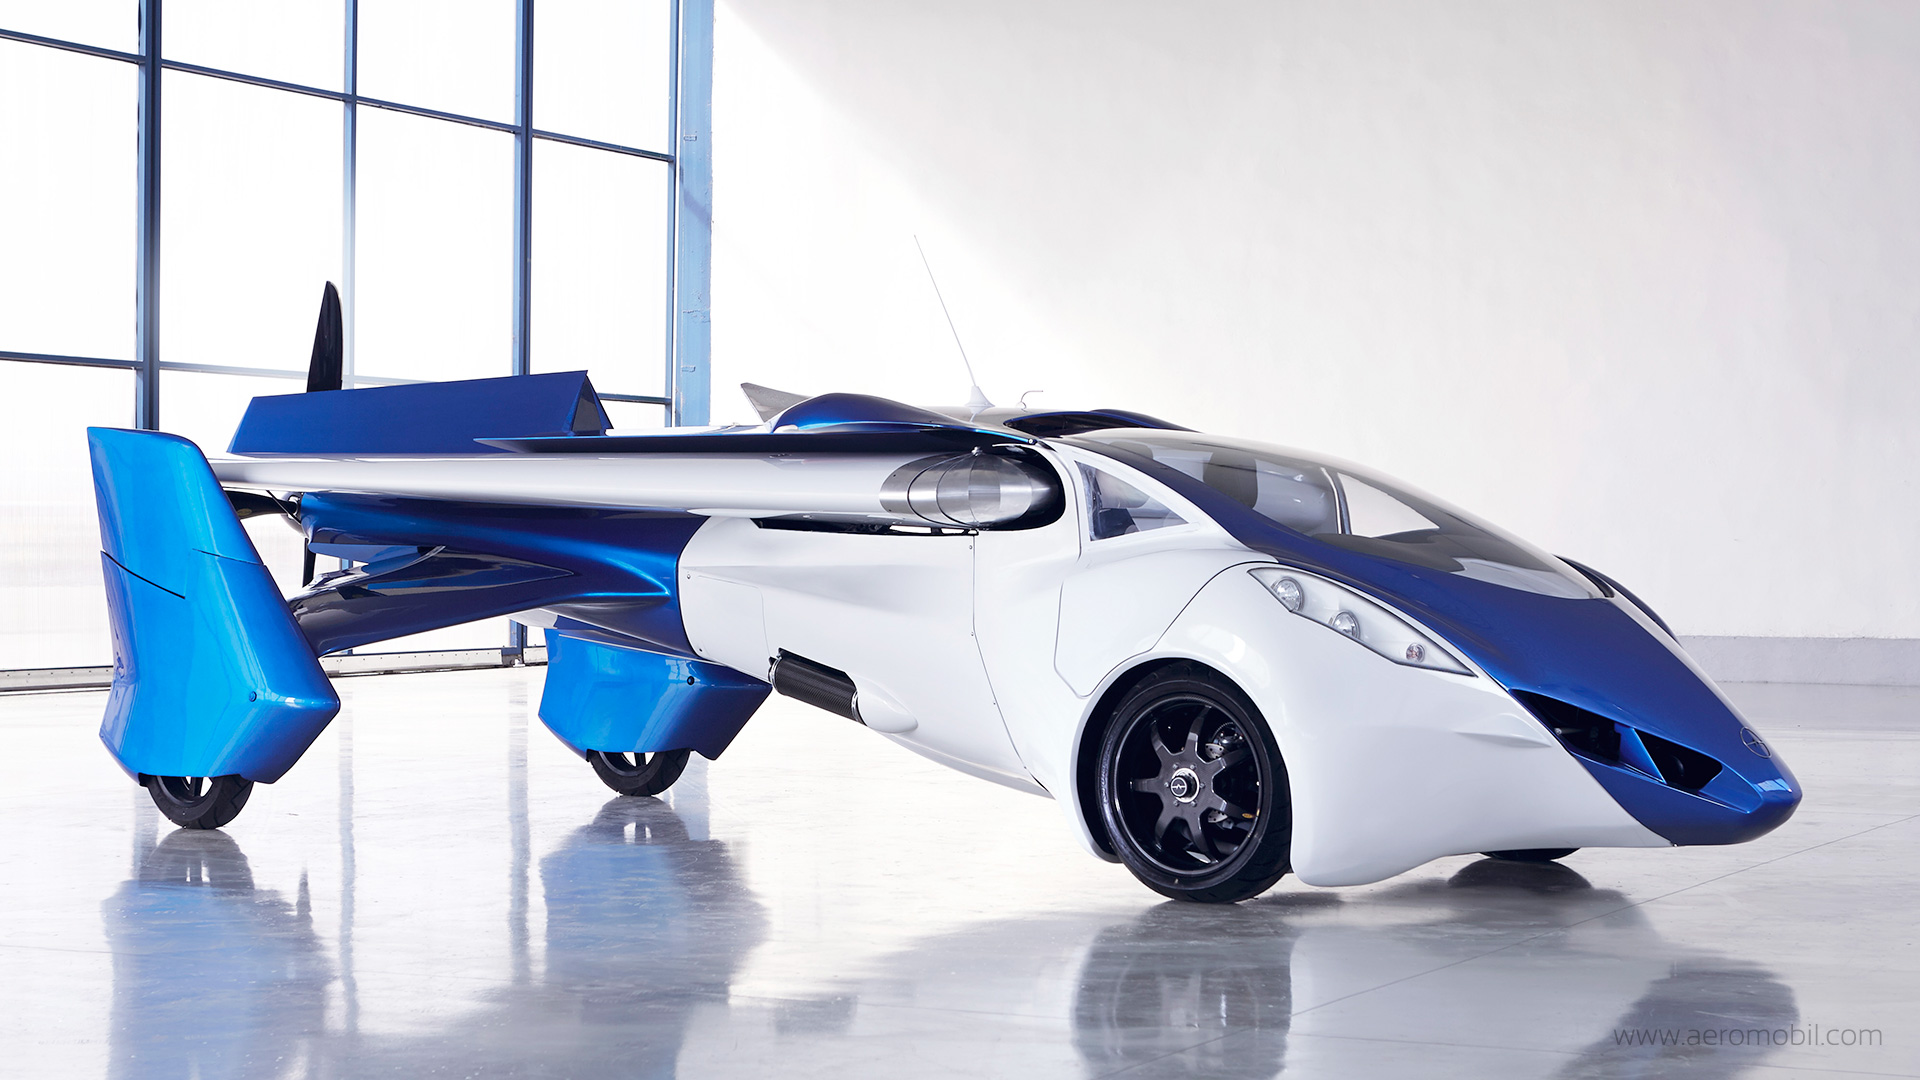 will we see a flying car by the end of 2017